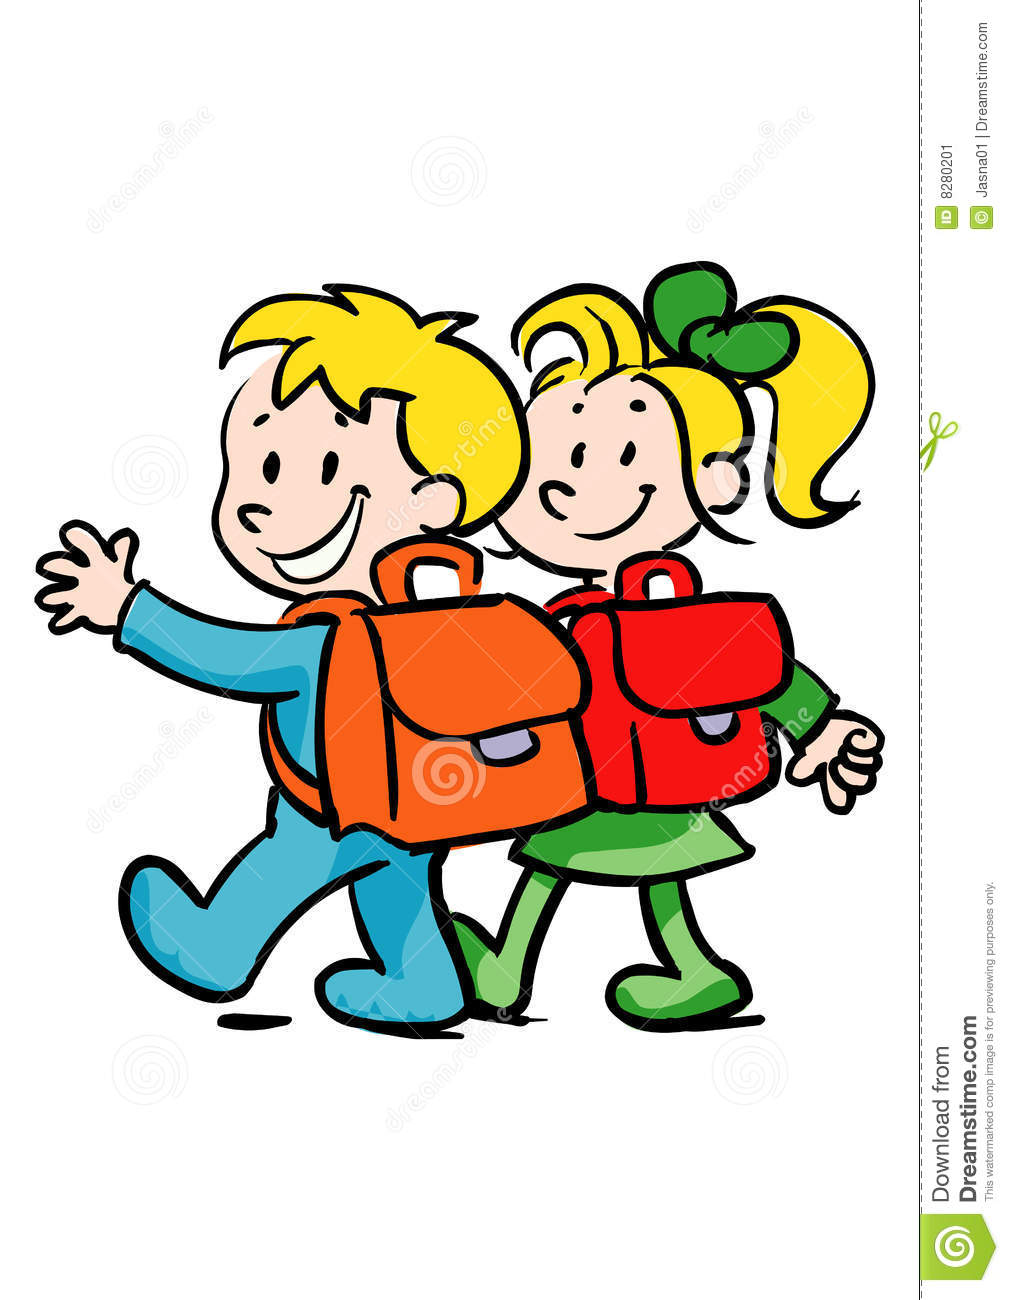 Wel e together with 407646203746501535 together with Art Science Collaboration My Artist In Residency At The Trout Lake Research Station as well Stock Image Boy Girl Going To School Image8280201 together with Wel e. on gesture drawing program